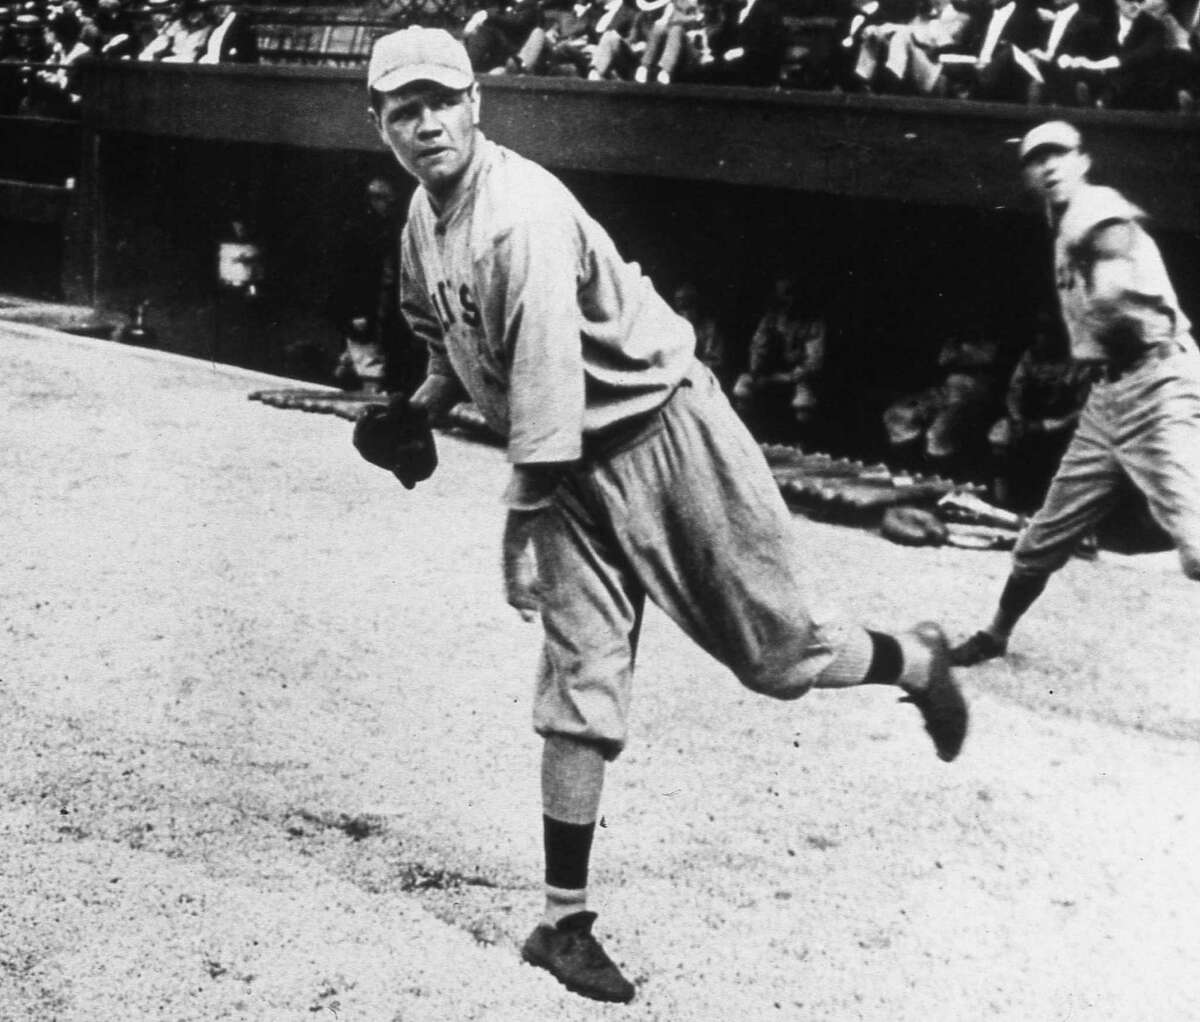 8. Dodgers-Red Sox, 1916 World Series Game 2: 14 innings Babe Ruth's legend began not as an otherworldly slugger in pinstripes, but as an imposing pitcher from Beantown. Ruth would have scoffed at pitch counts and innings restrictions as much as he would have laughed at modern-day nutritionists. The Babe pitched all 14 innings of the Red Sox 2-1 win. This would be the third of four Red Sox World Series titles in seven years- after 1918, they famously wouldn't win another until 2004.